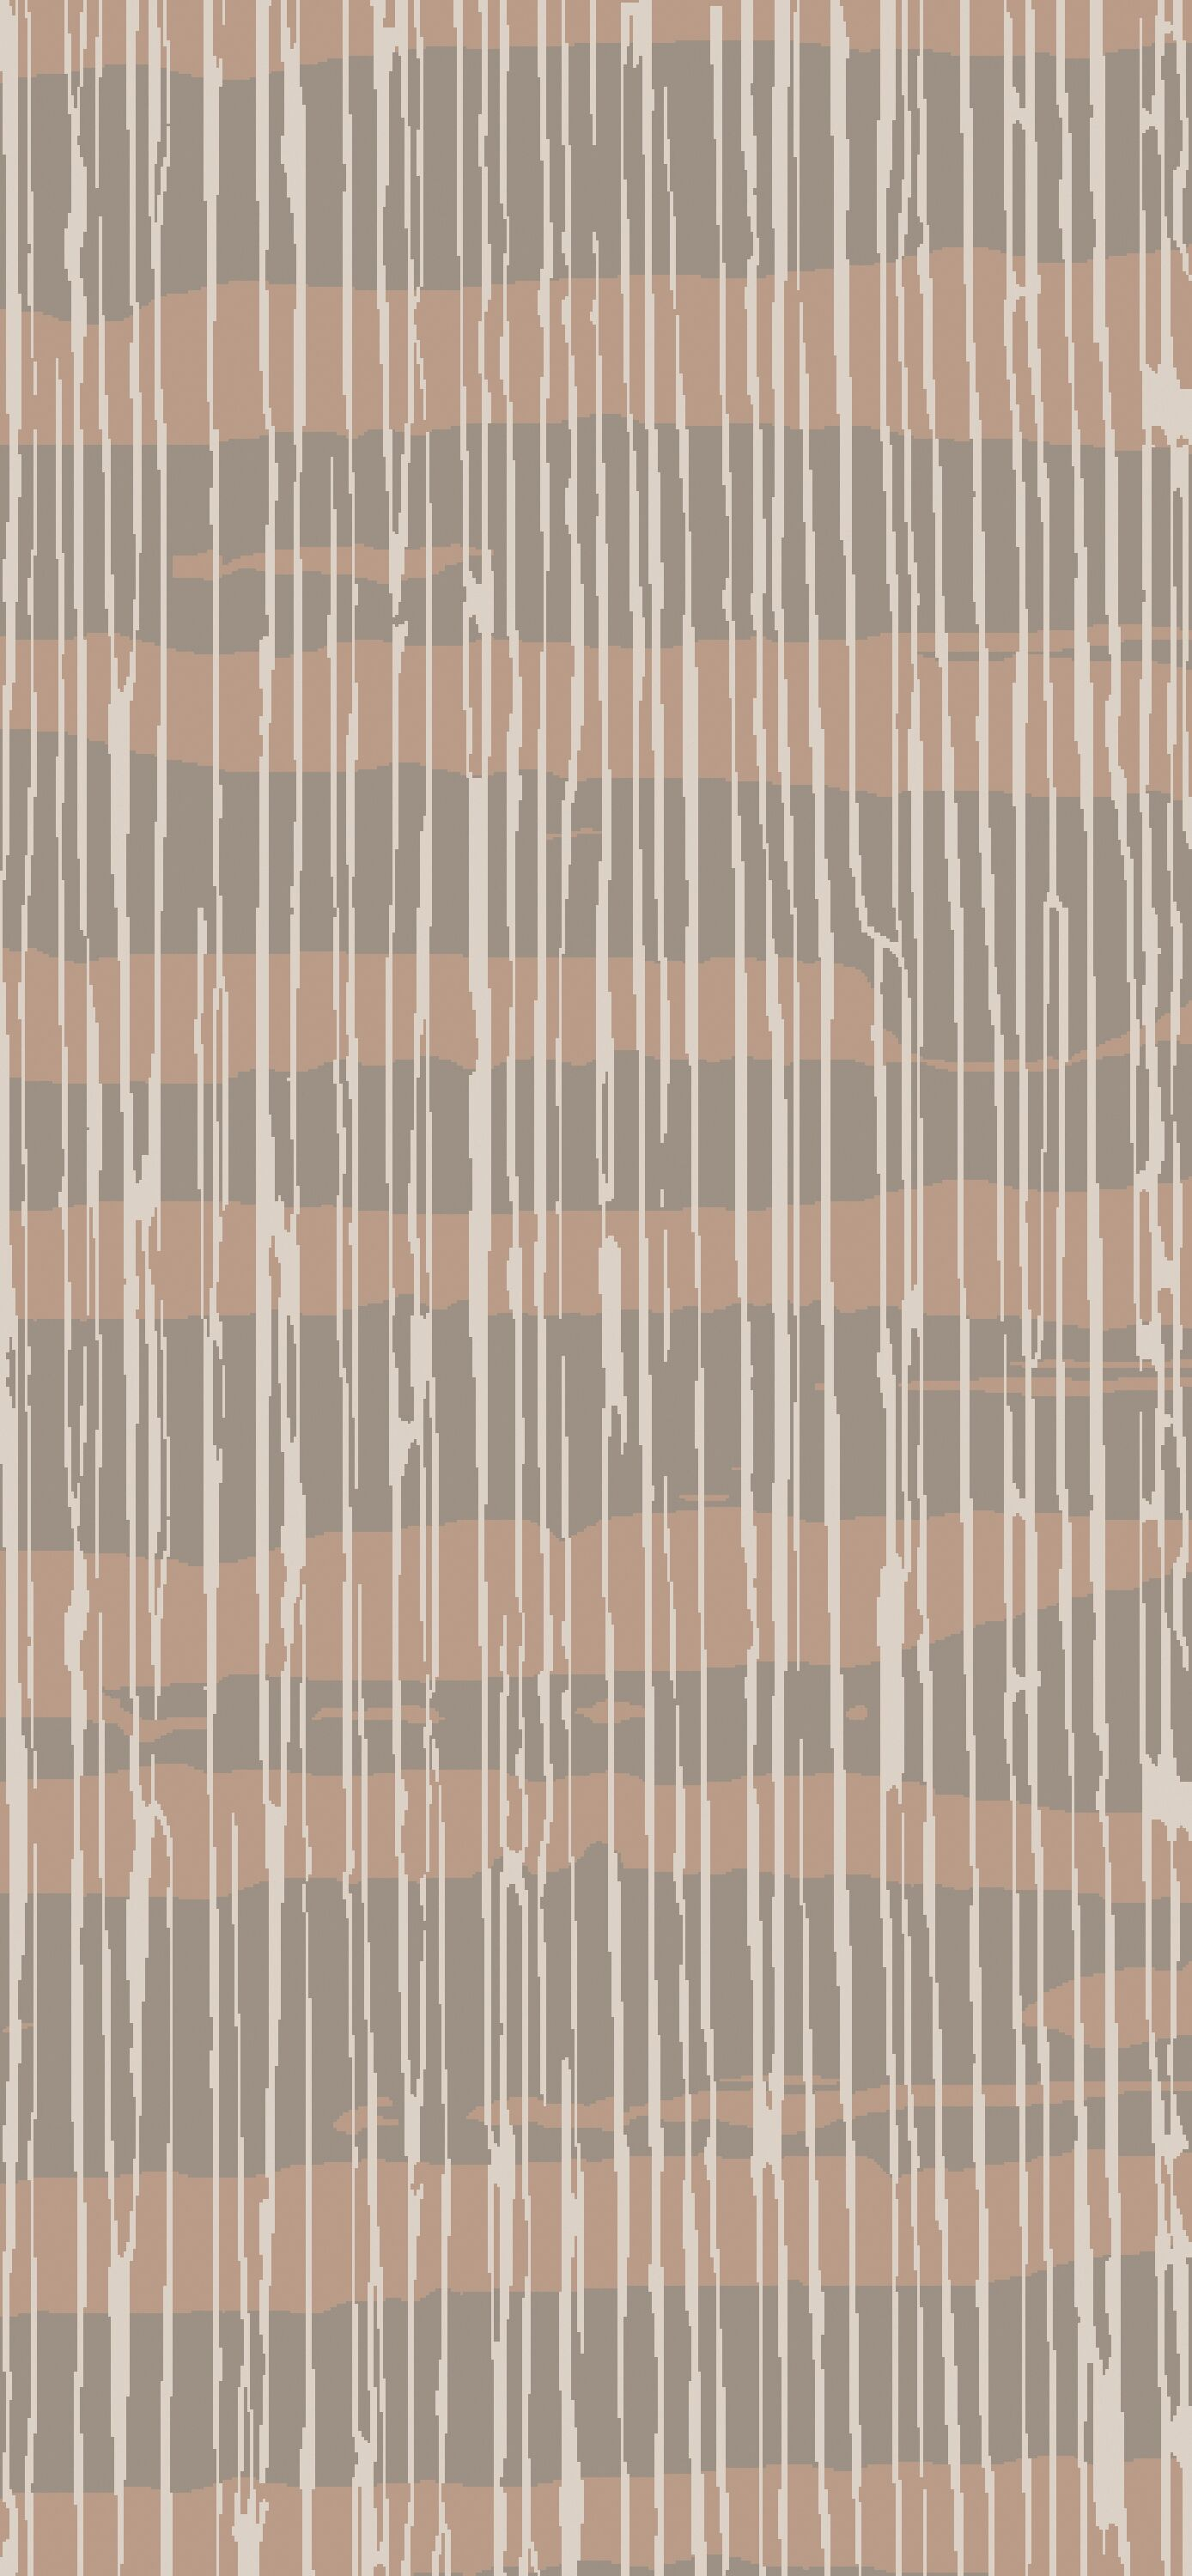 Sepviva Beige/Taupe Rug Rug Size: Rectangle 8' x 11'